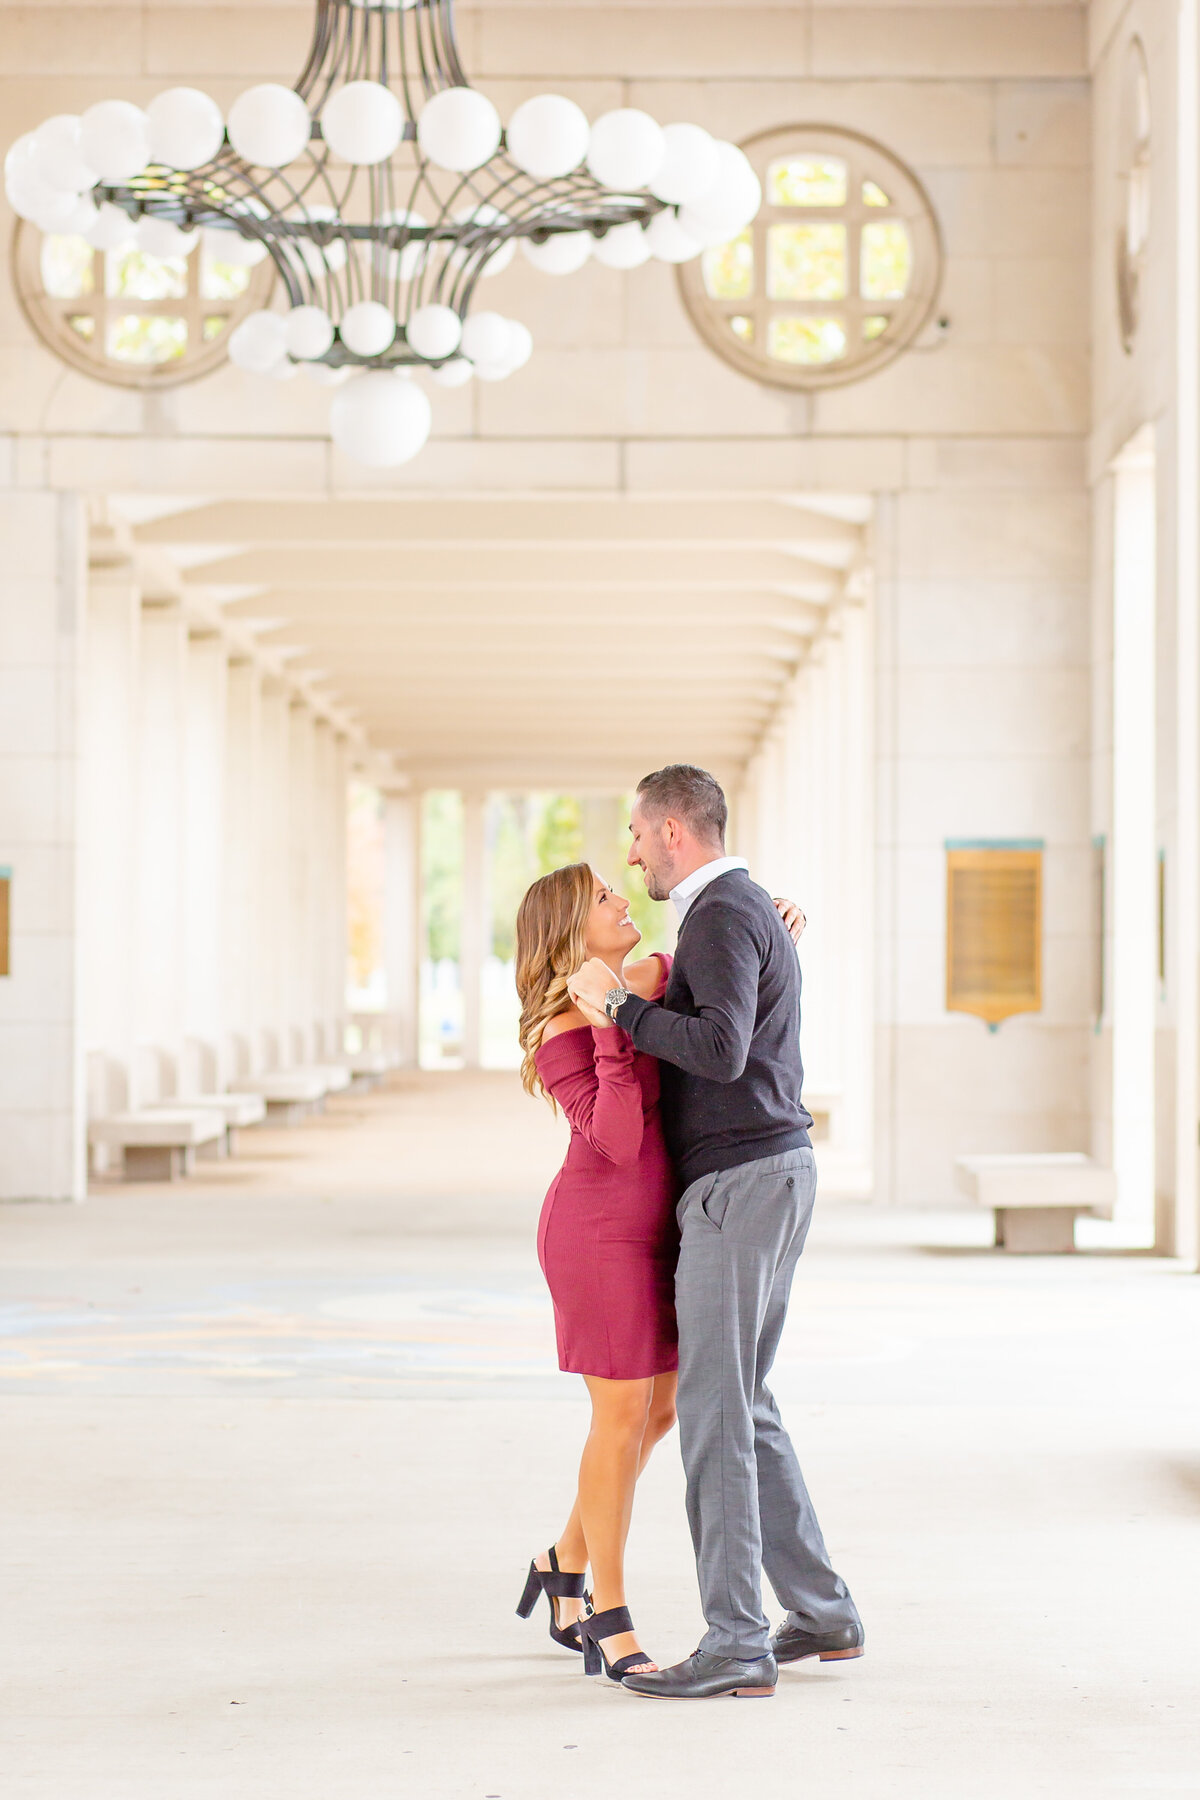 Fall Sunset Engagement  Session with pink off the shoulder dress couple dancing  under the chandelier at The Muny  in Forest Park in St. Louis by Amy Britton Photography Photographer in St. Louis